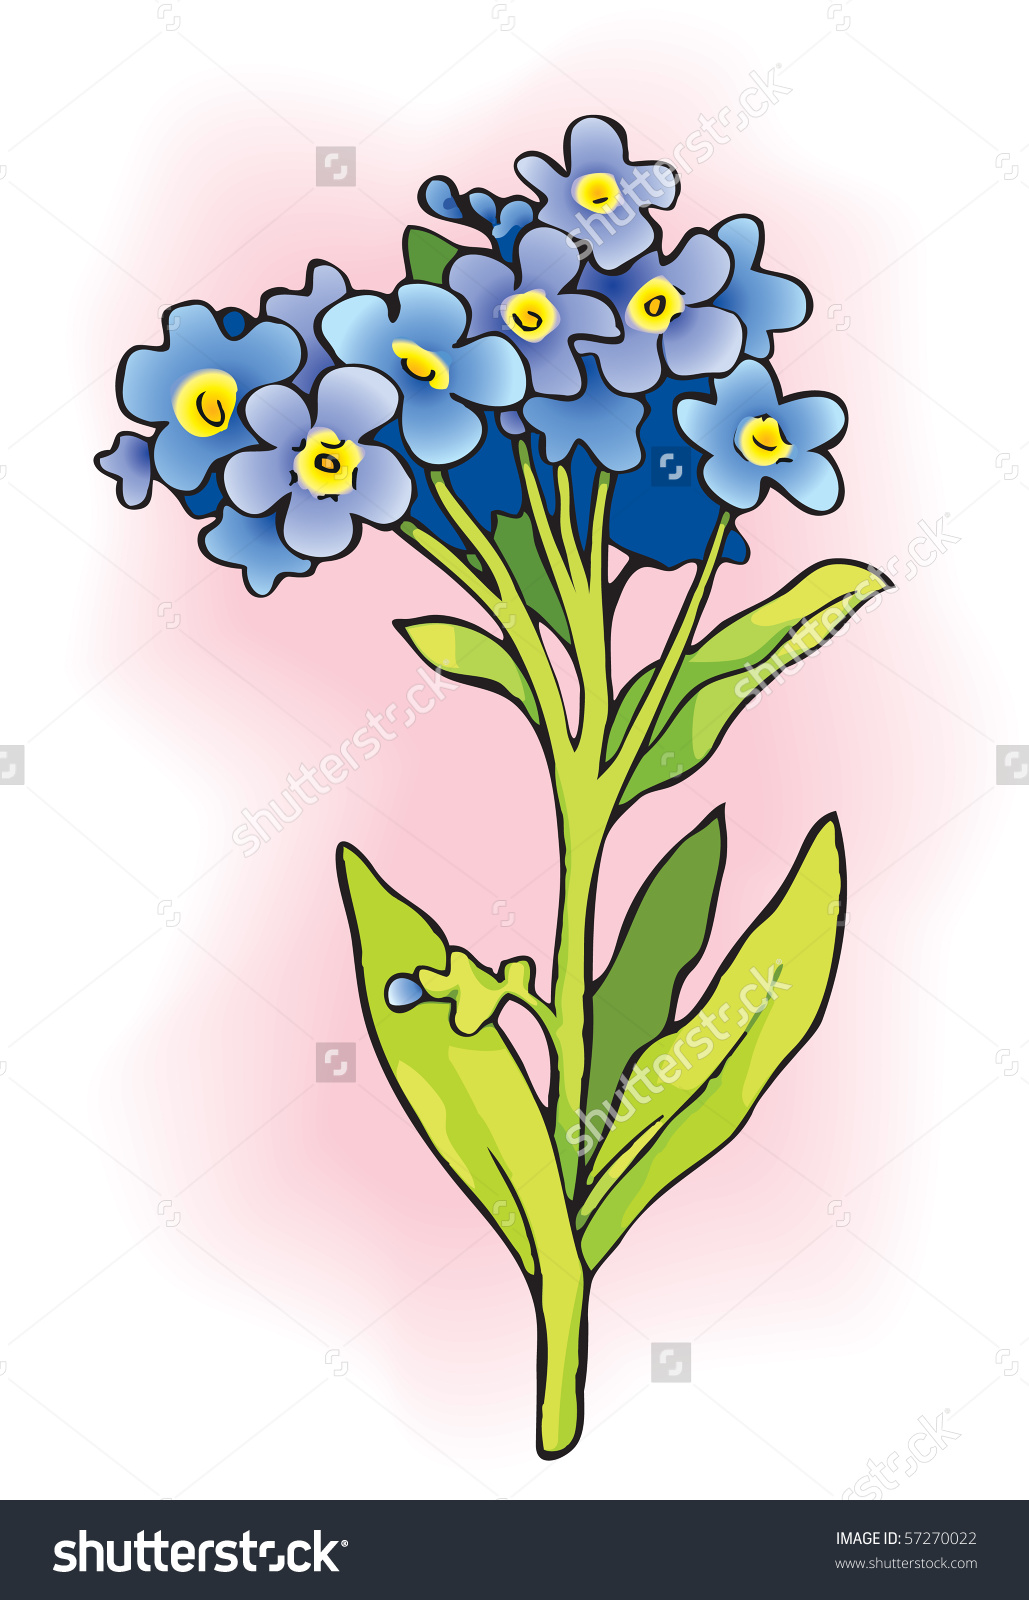 Vector Drawing Sprig Myosotis Flowering Plants Stock Vector.